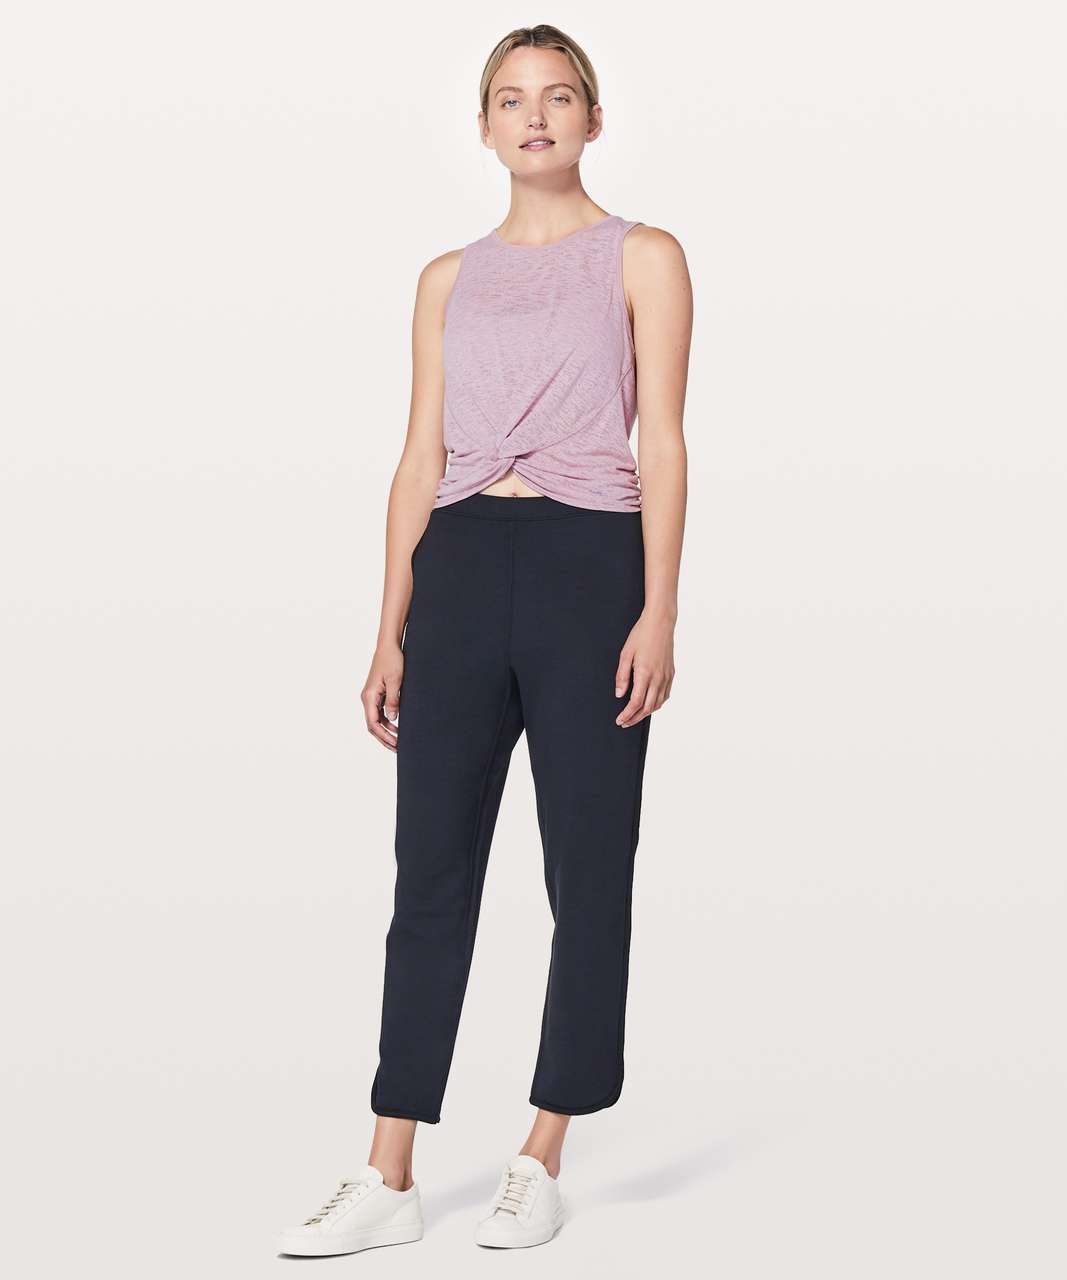 Lululemon Breeze Through Twist Tank - Rose Blush